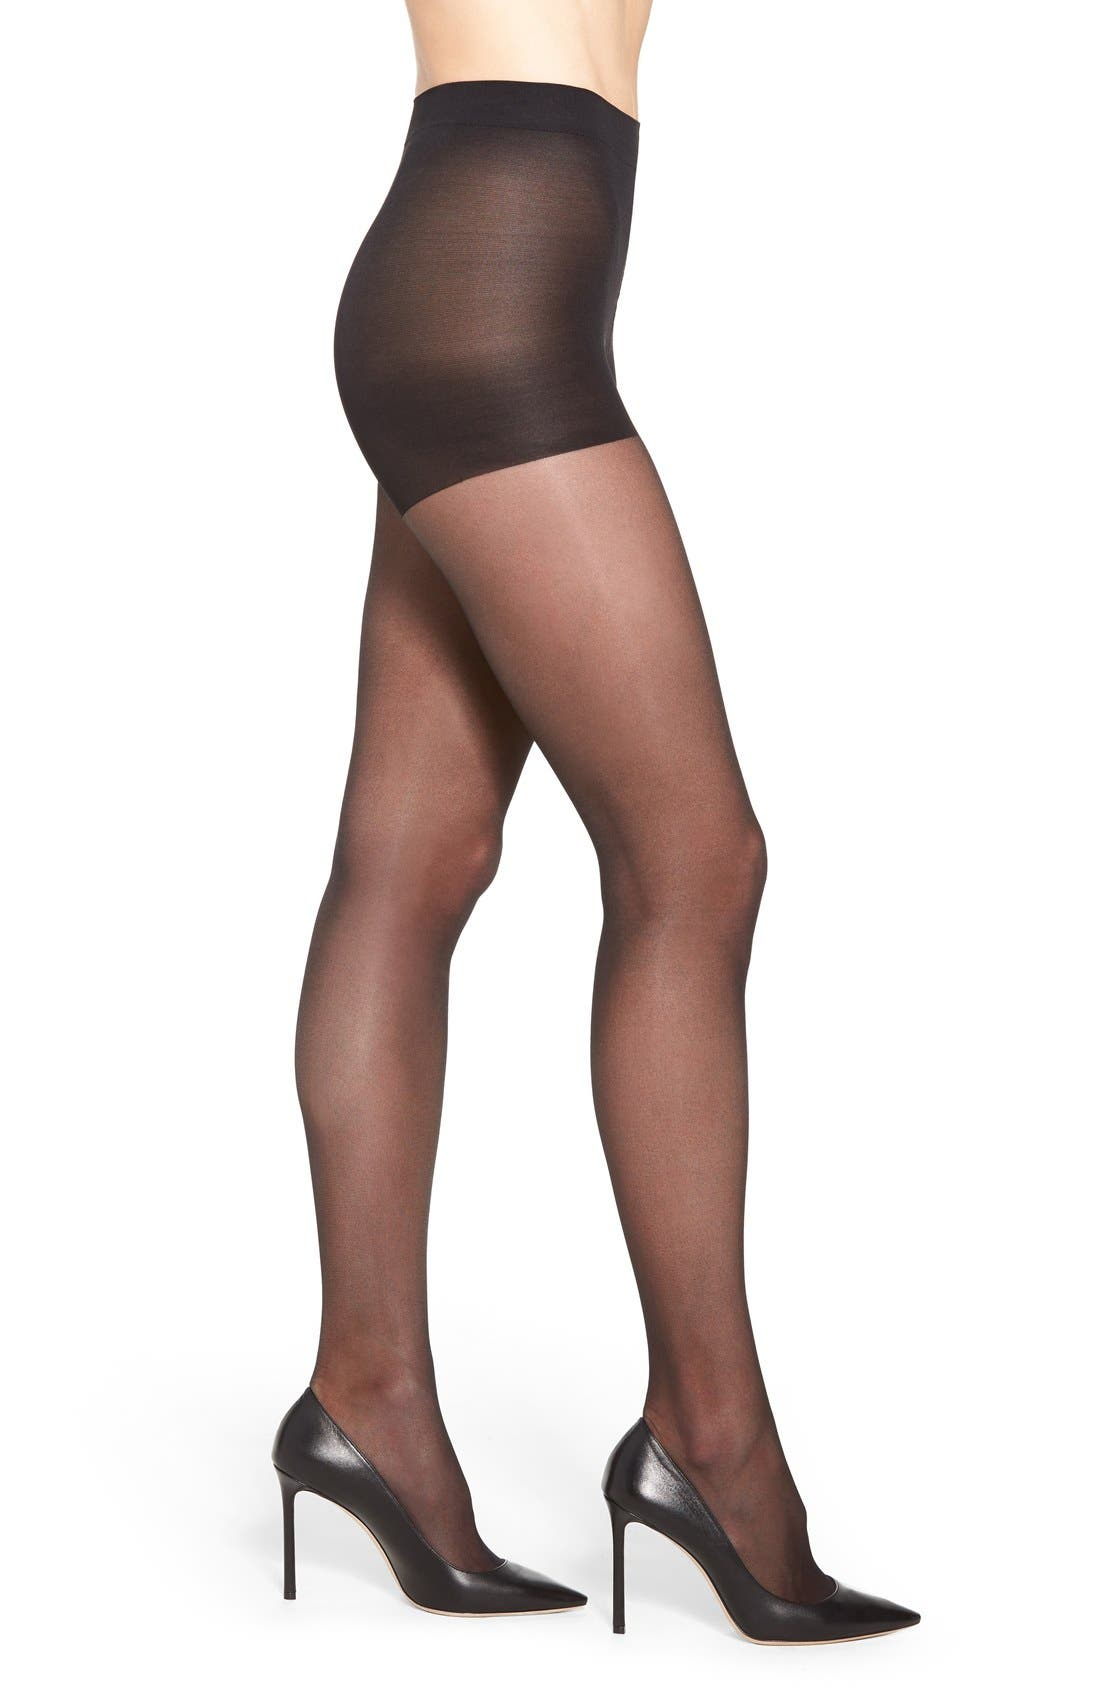 Light Support Pantyhose,                         Main,                         color, Black